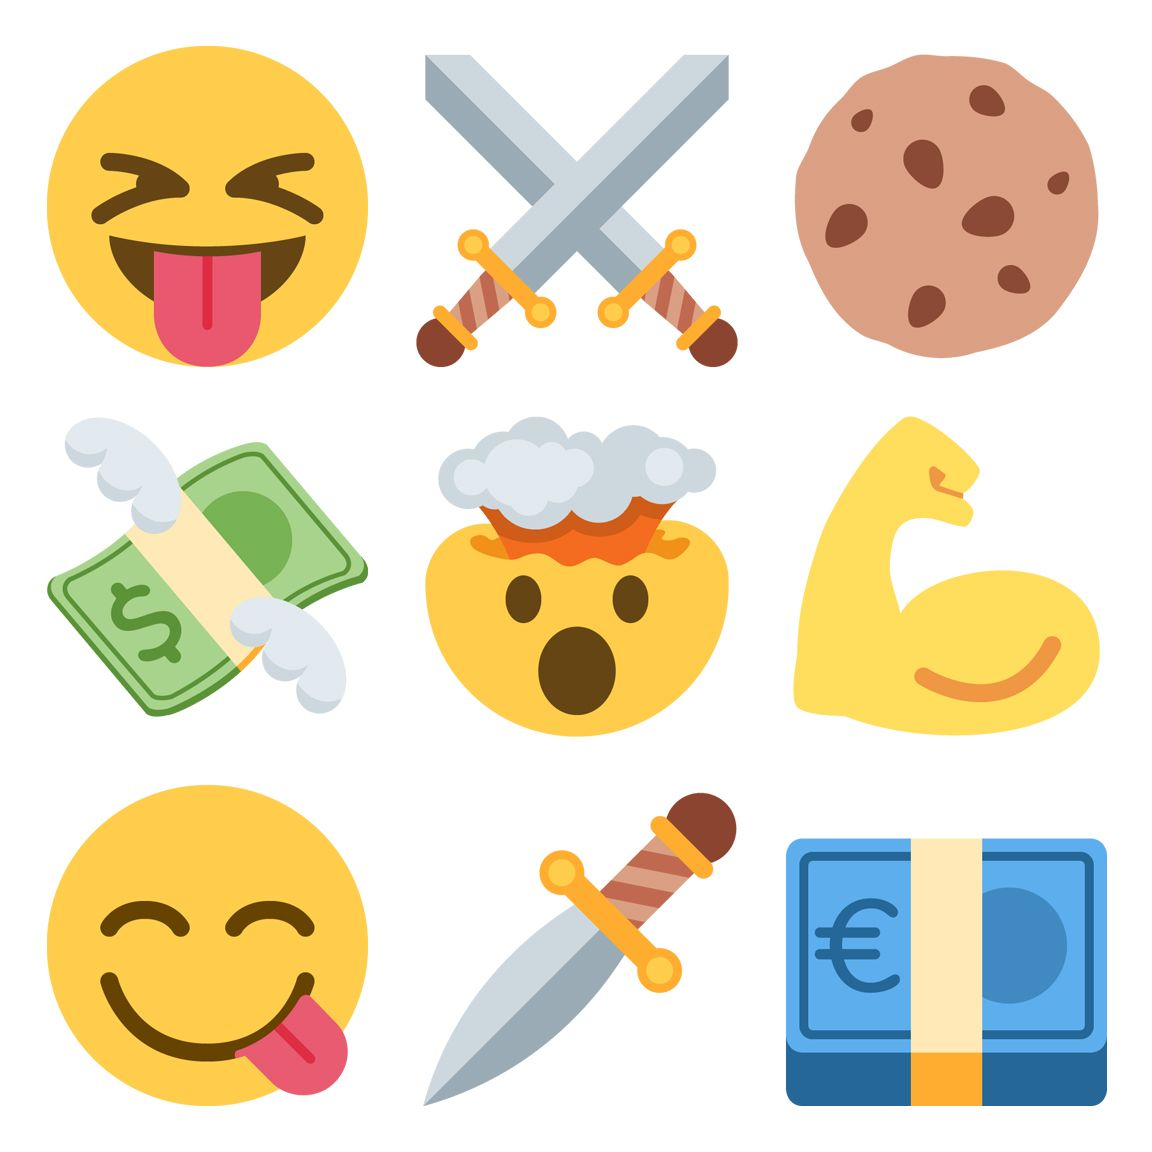 Emojipedia-Twemoji-12.1.6-Changed-Emoji-Design-Selection